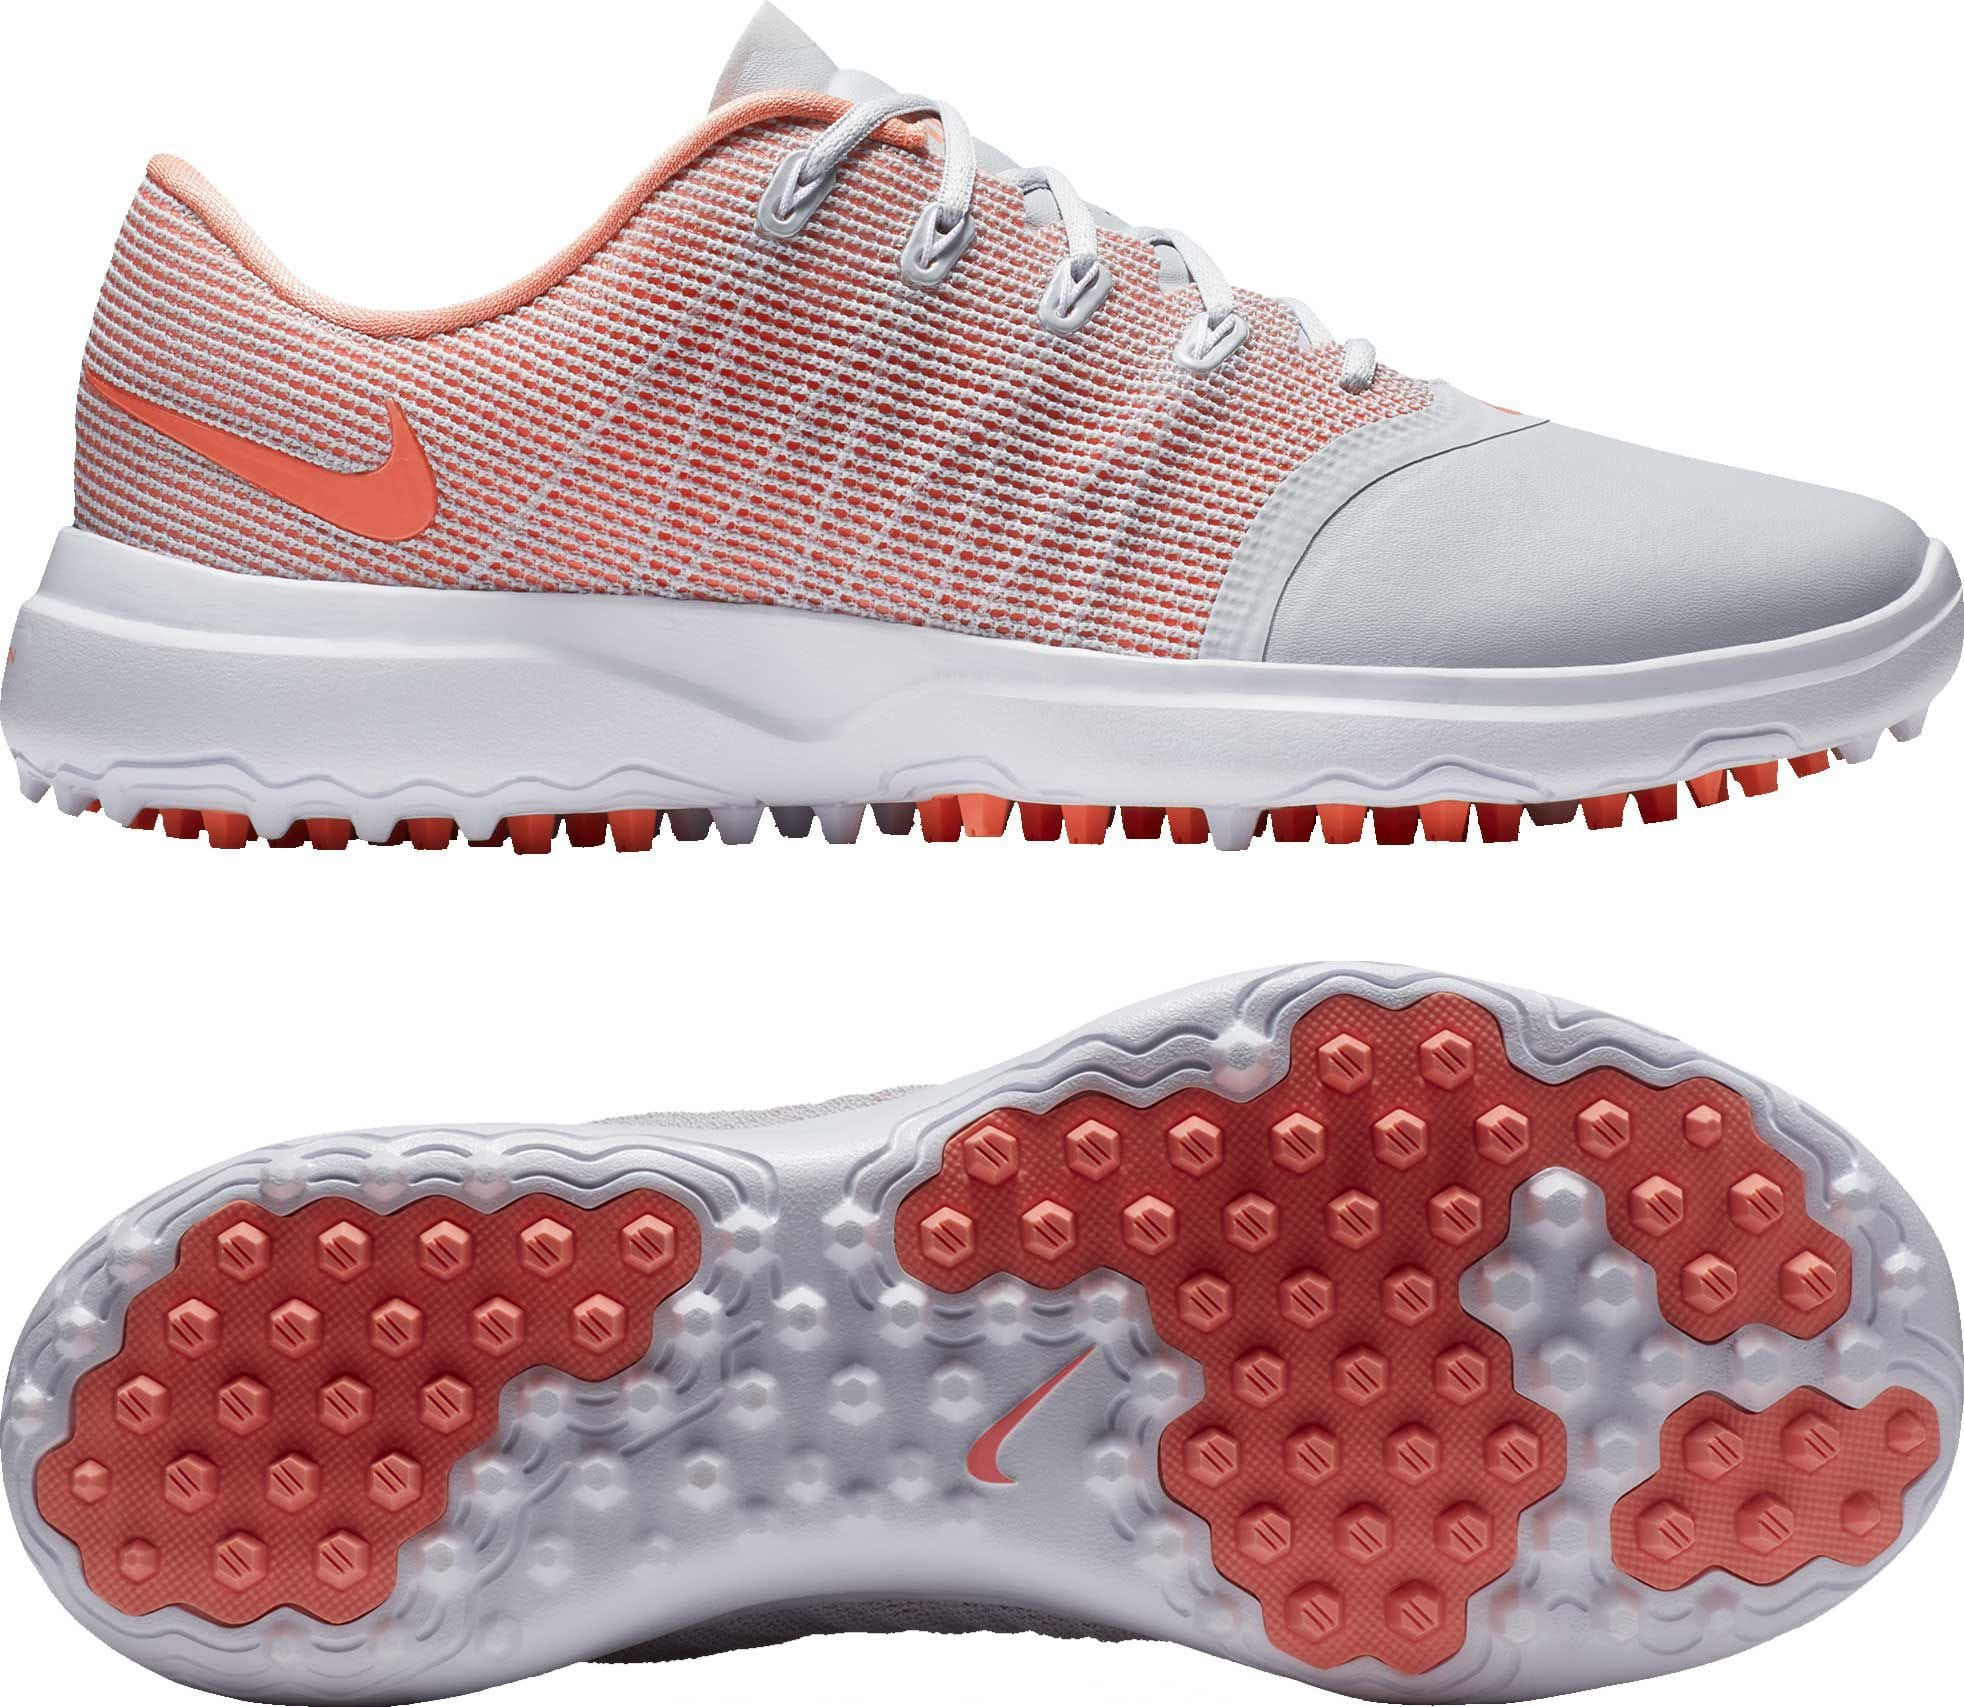 bd799349b006 Nike Women s Lunar Empress 2 Golf Shoes  71.97 - Slickdeals.net